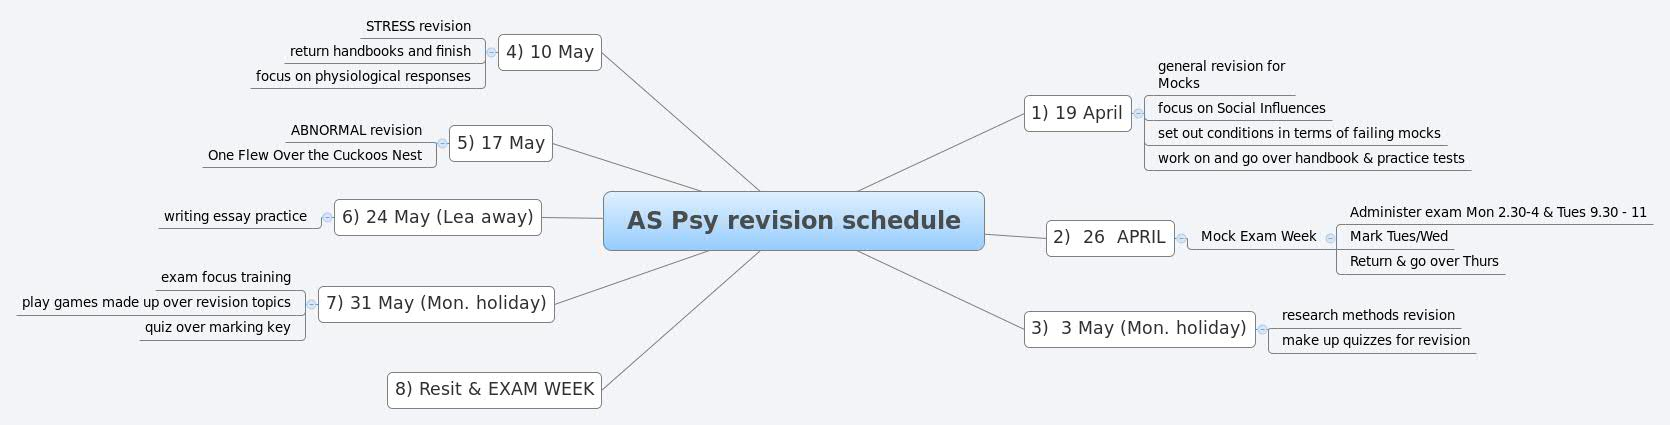 AS Psy revision schedule